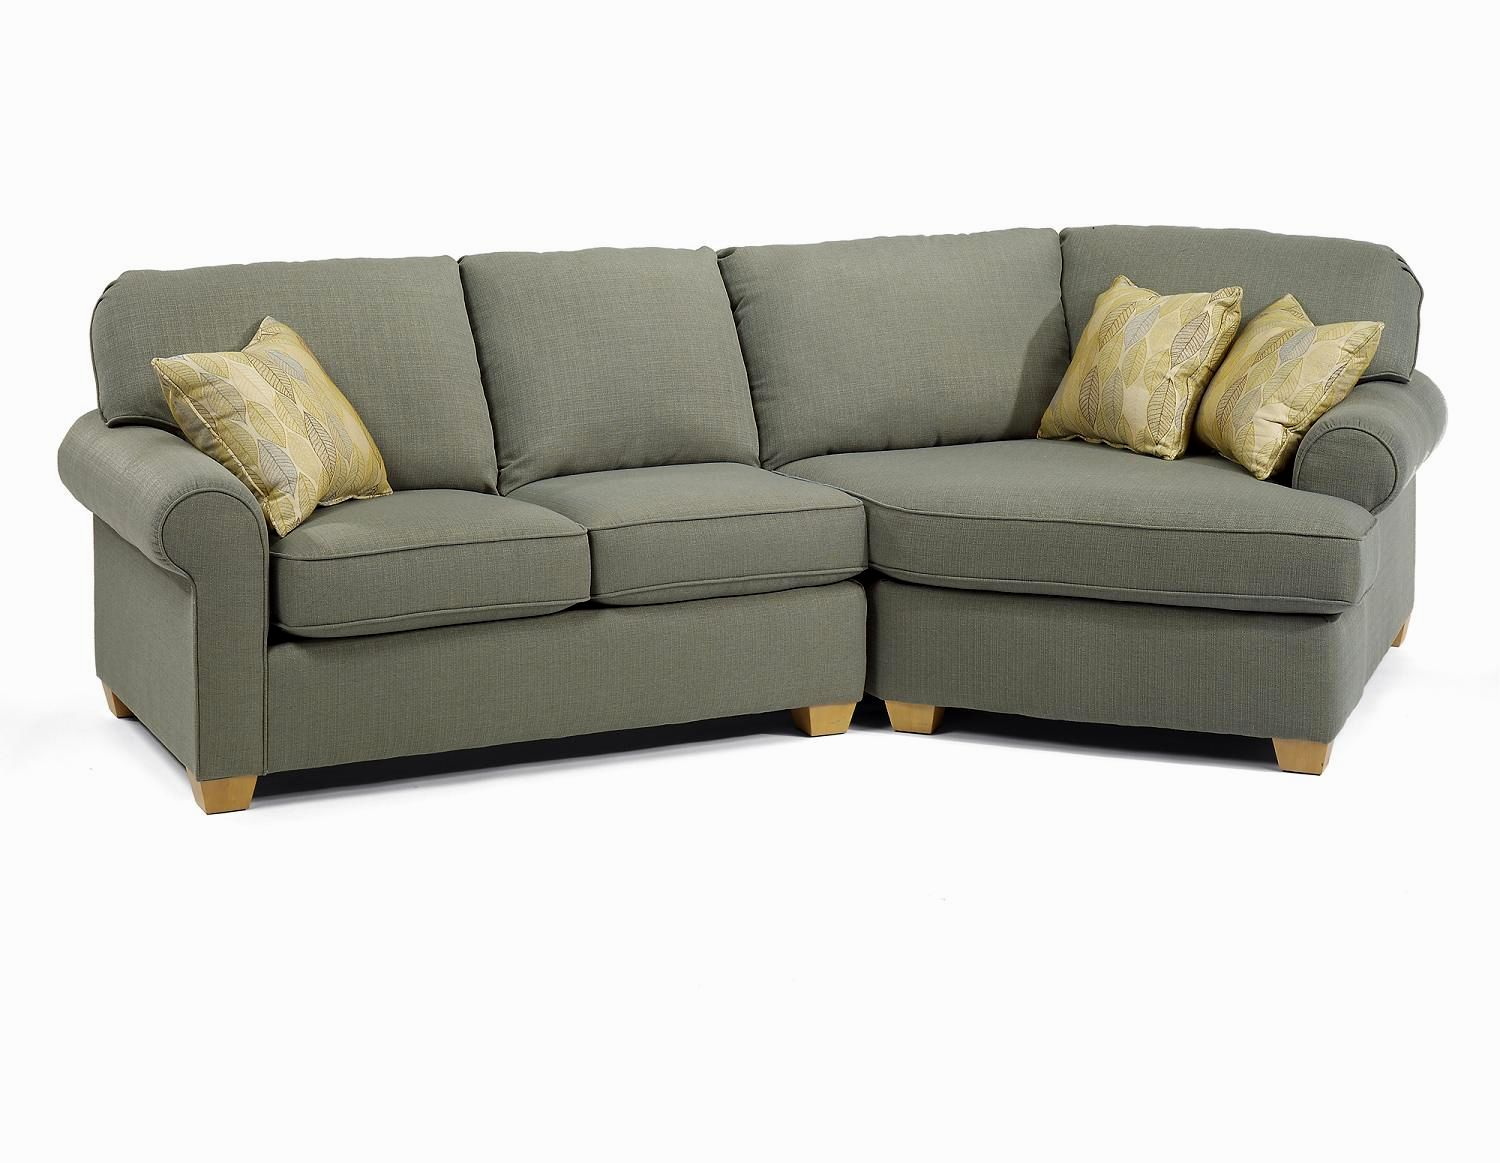 awesome curved sectional sofa ideas-New Curved Sectional sofa Model